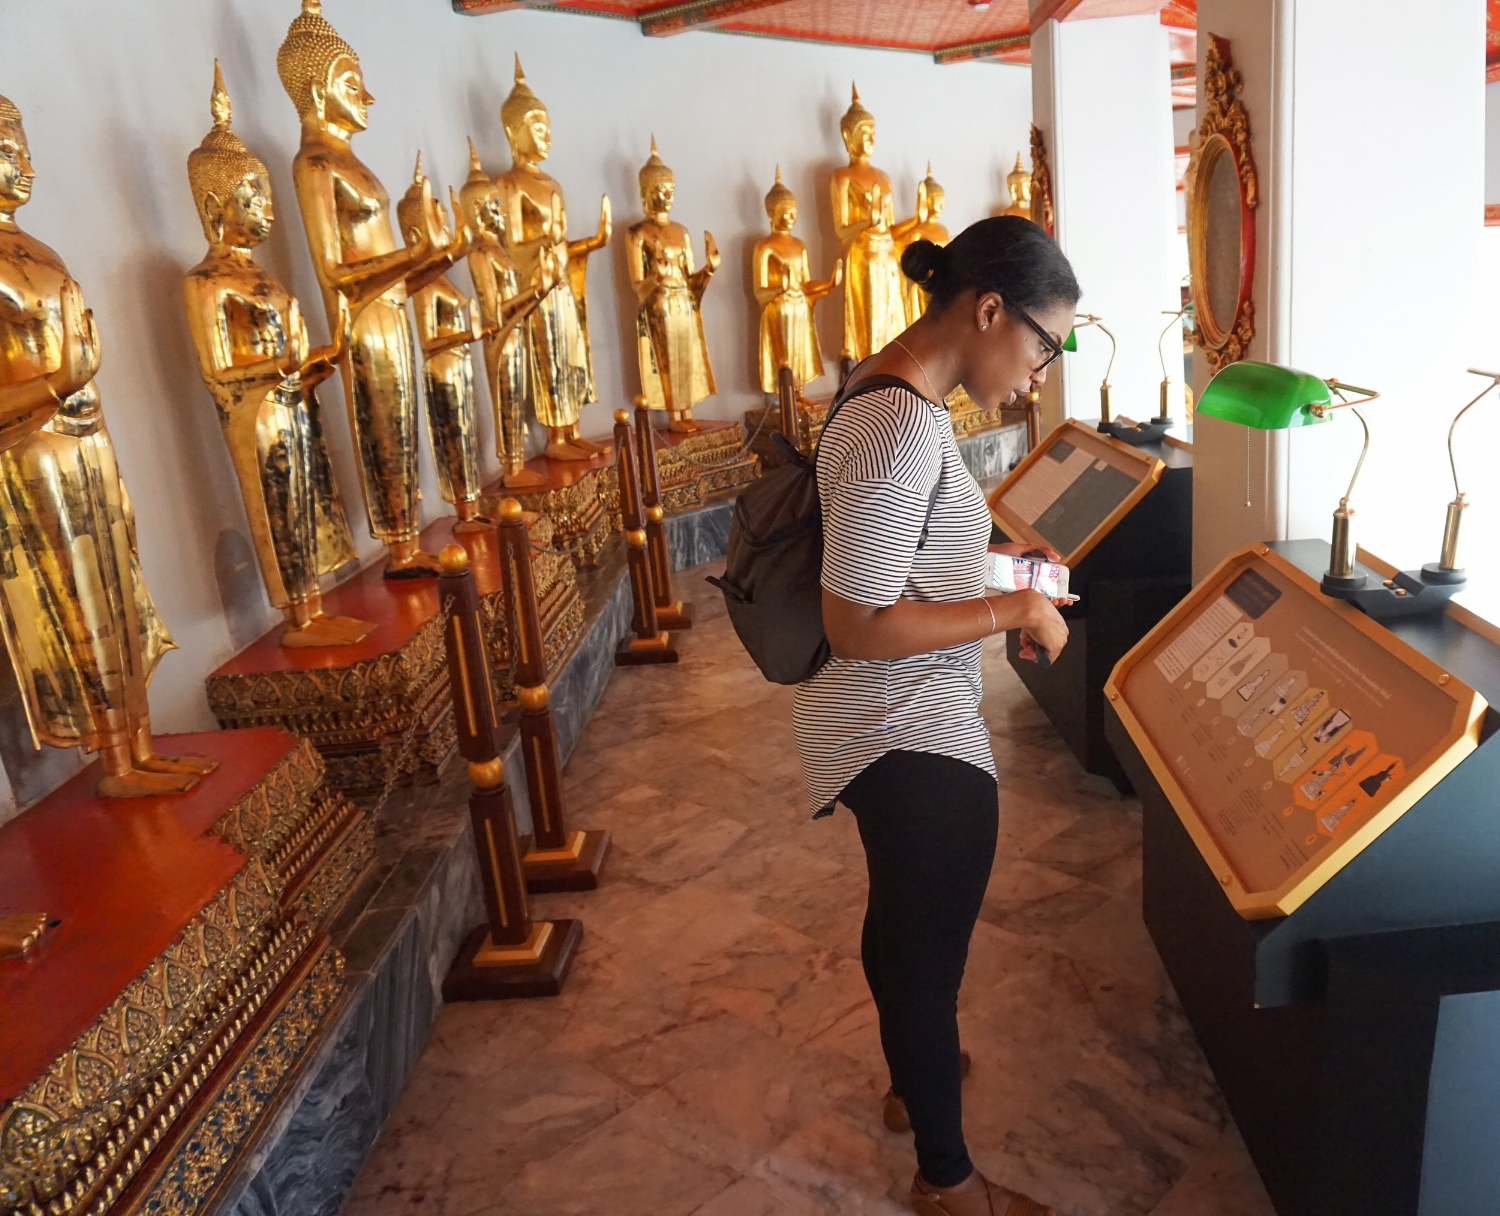 Reading the history about the temple surrounded by smaller Buddha images